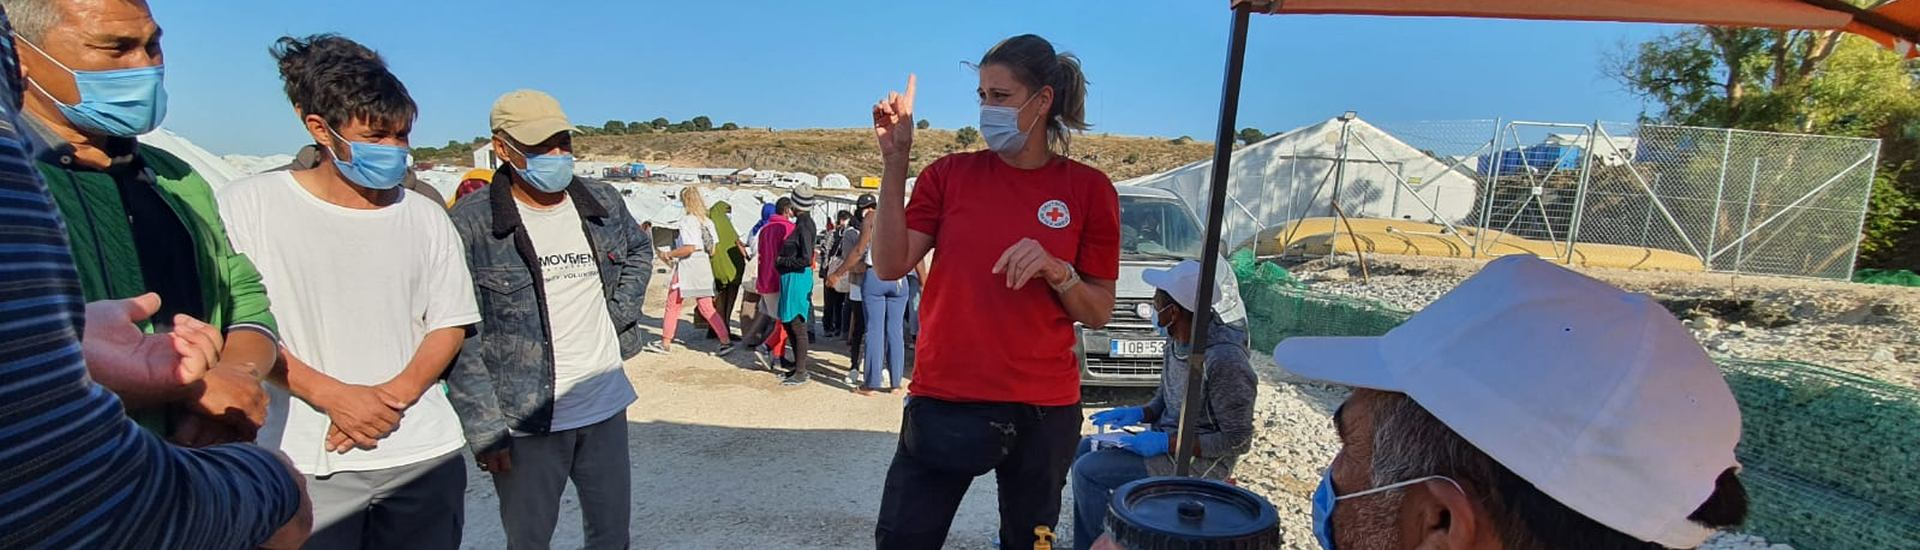 Greece: Assistance on the island of Lesbos